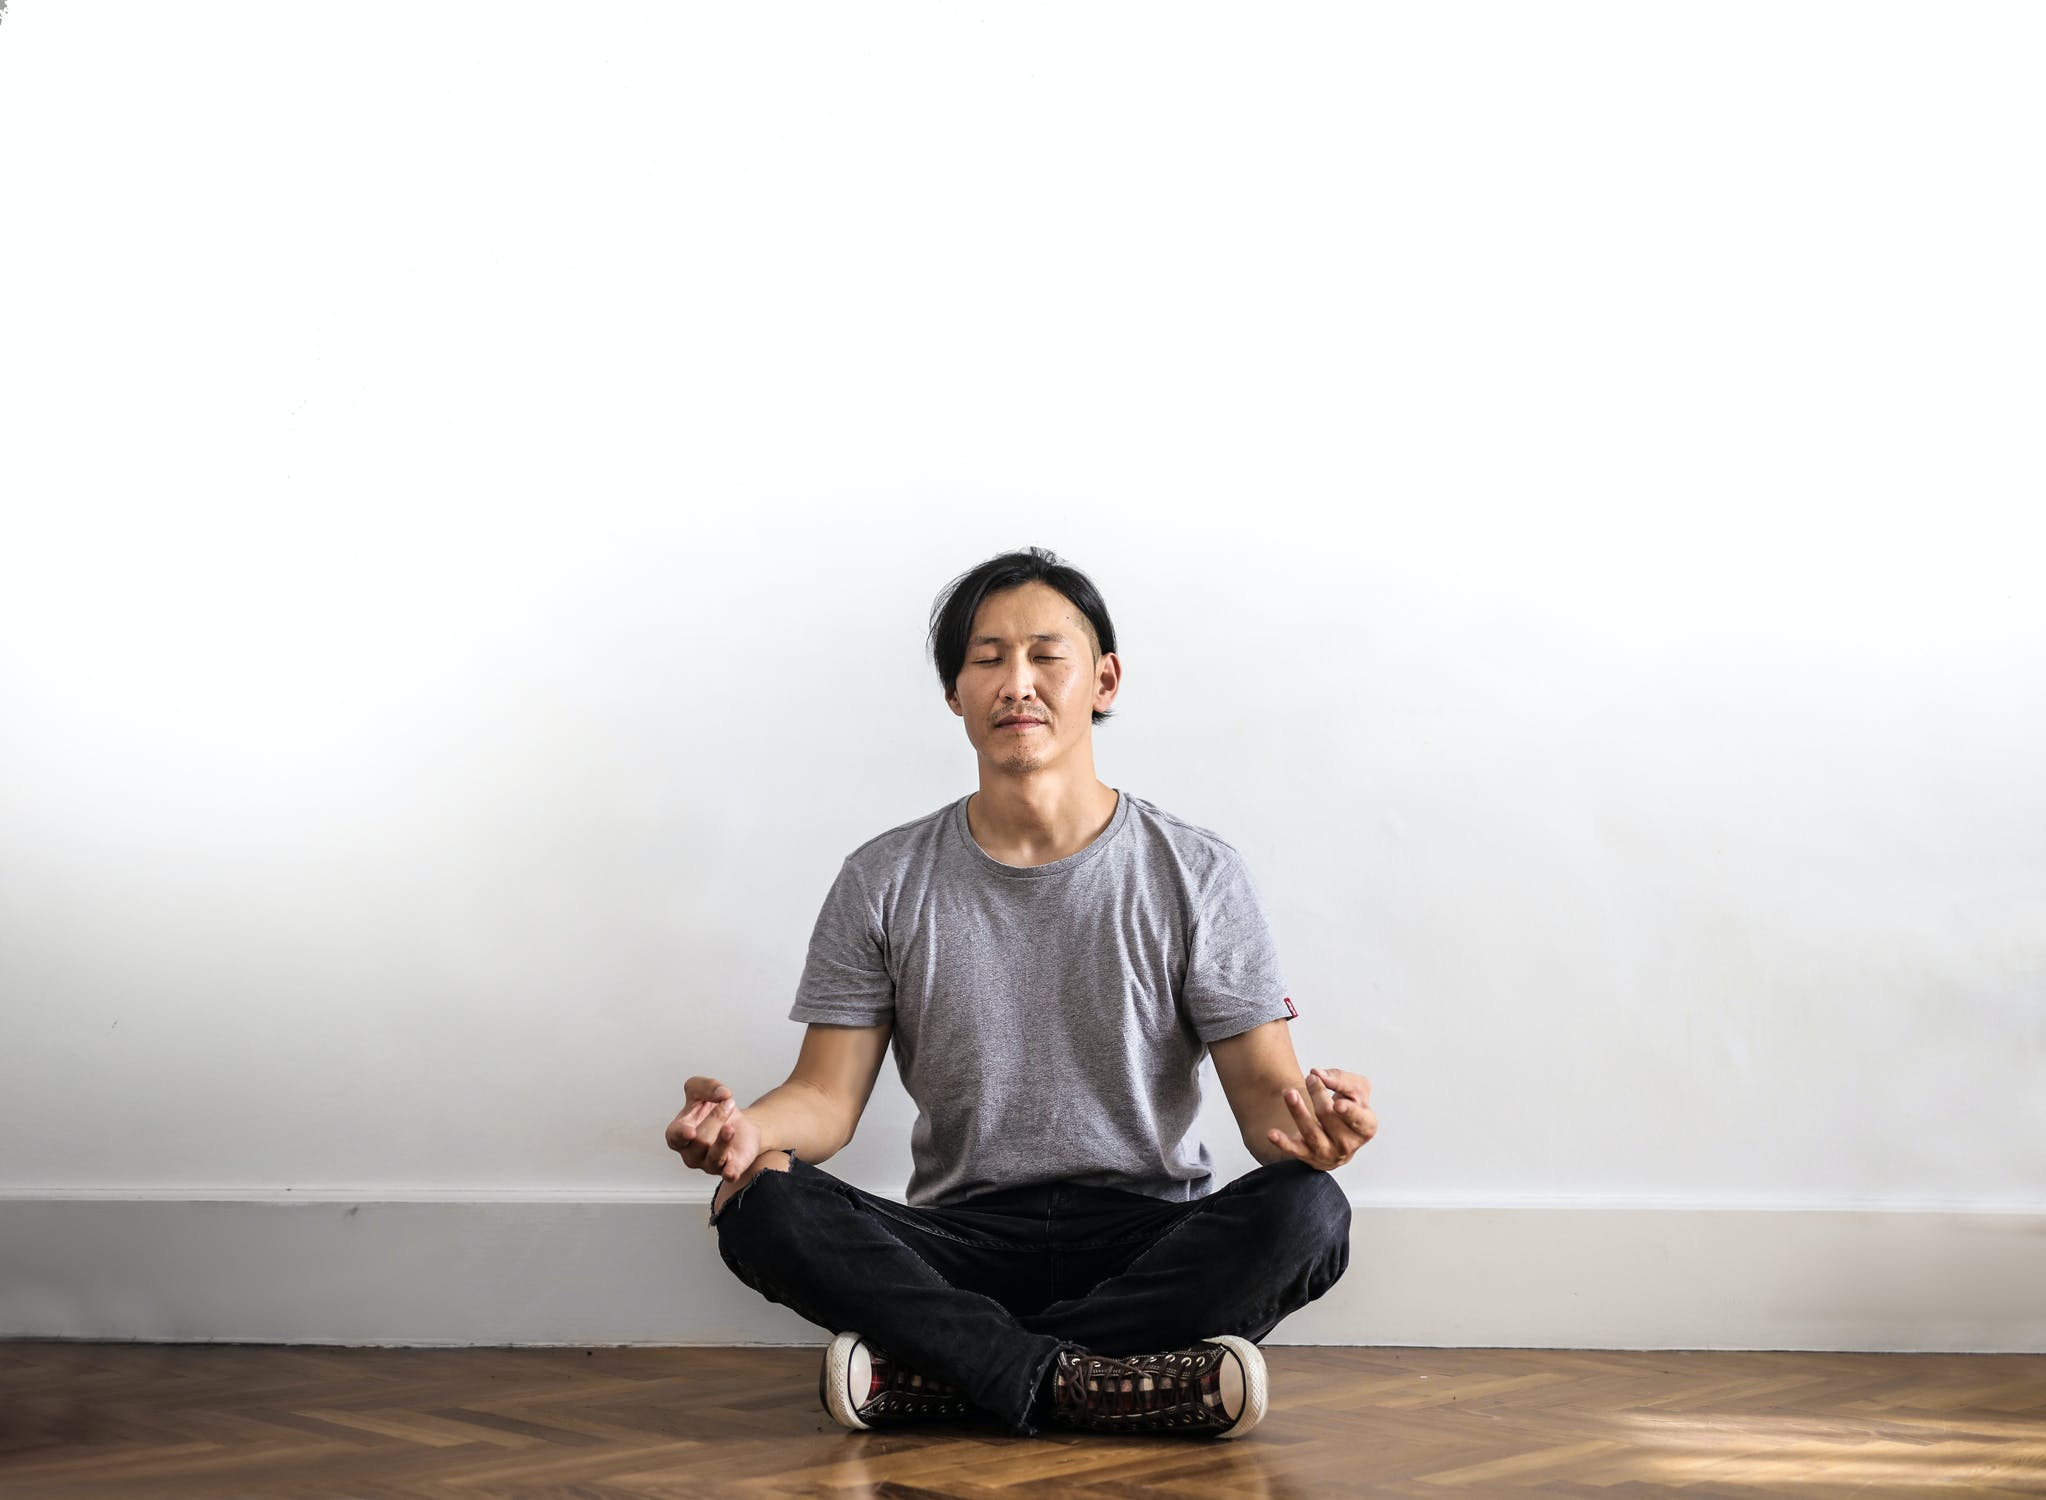 Methods on how to meditate in silence